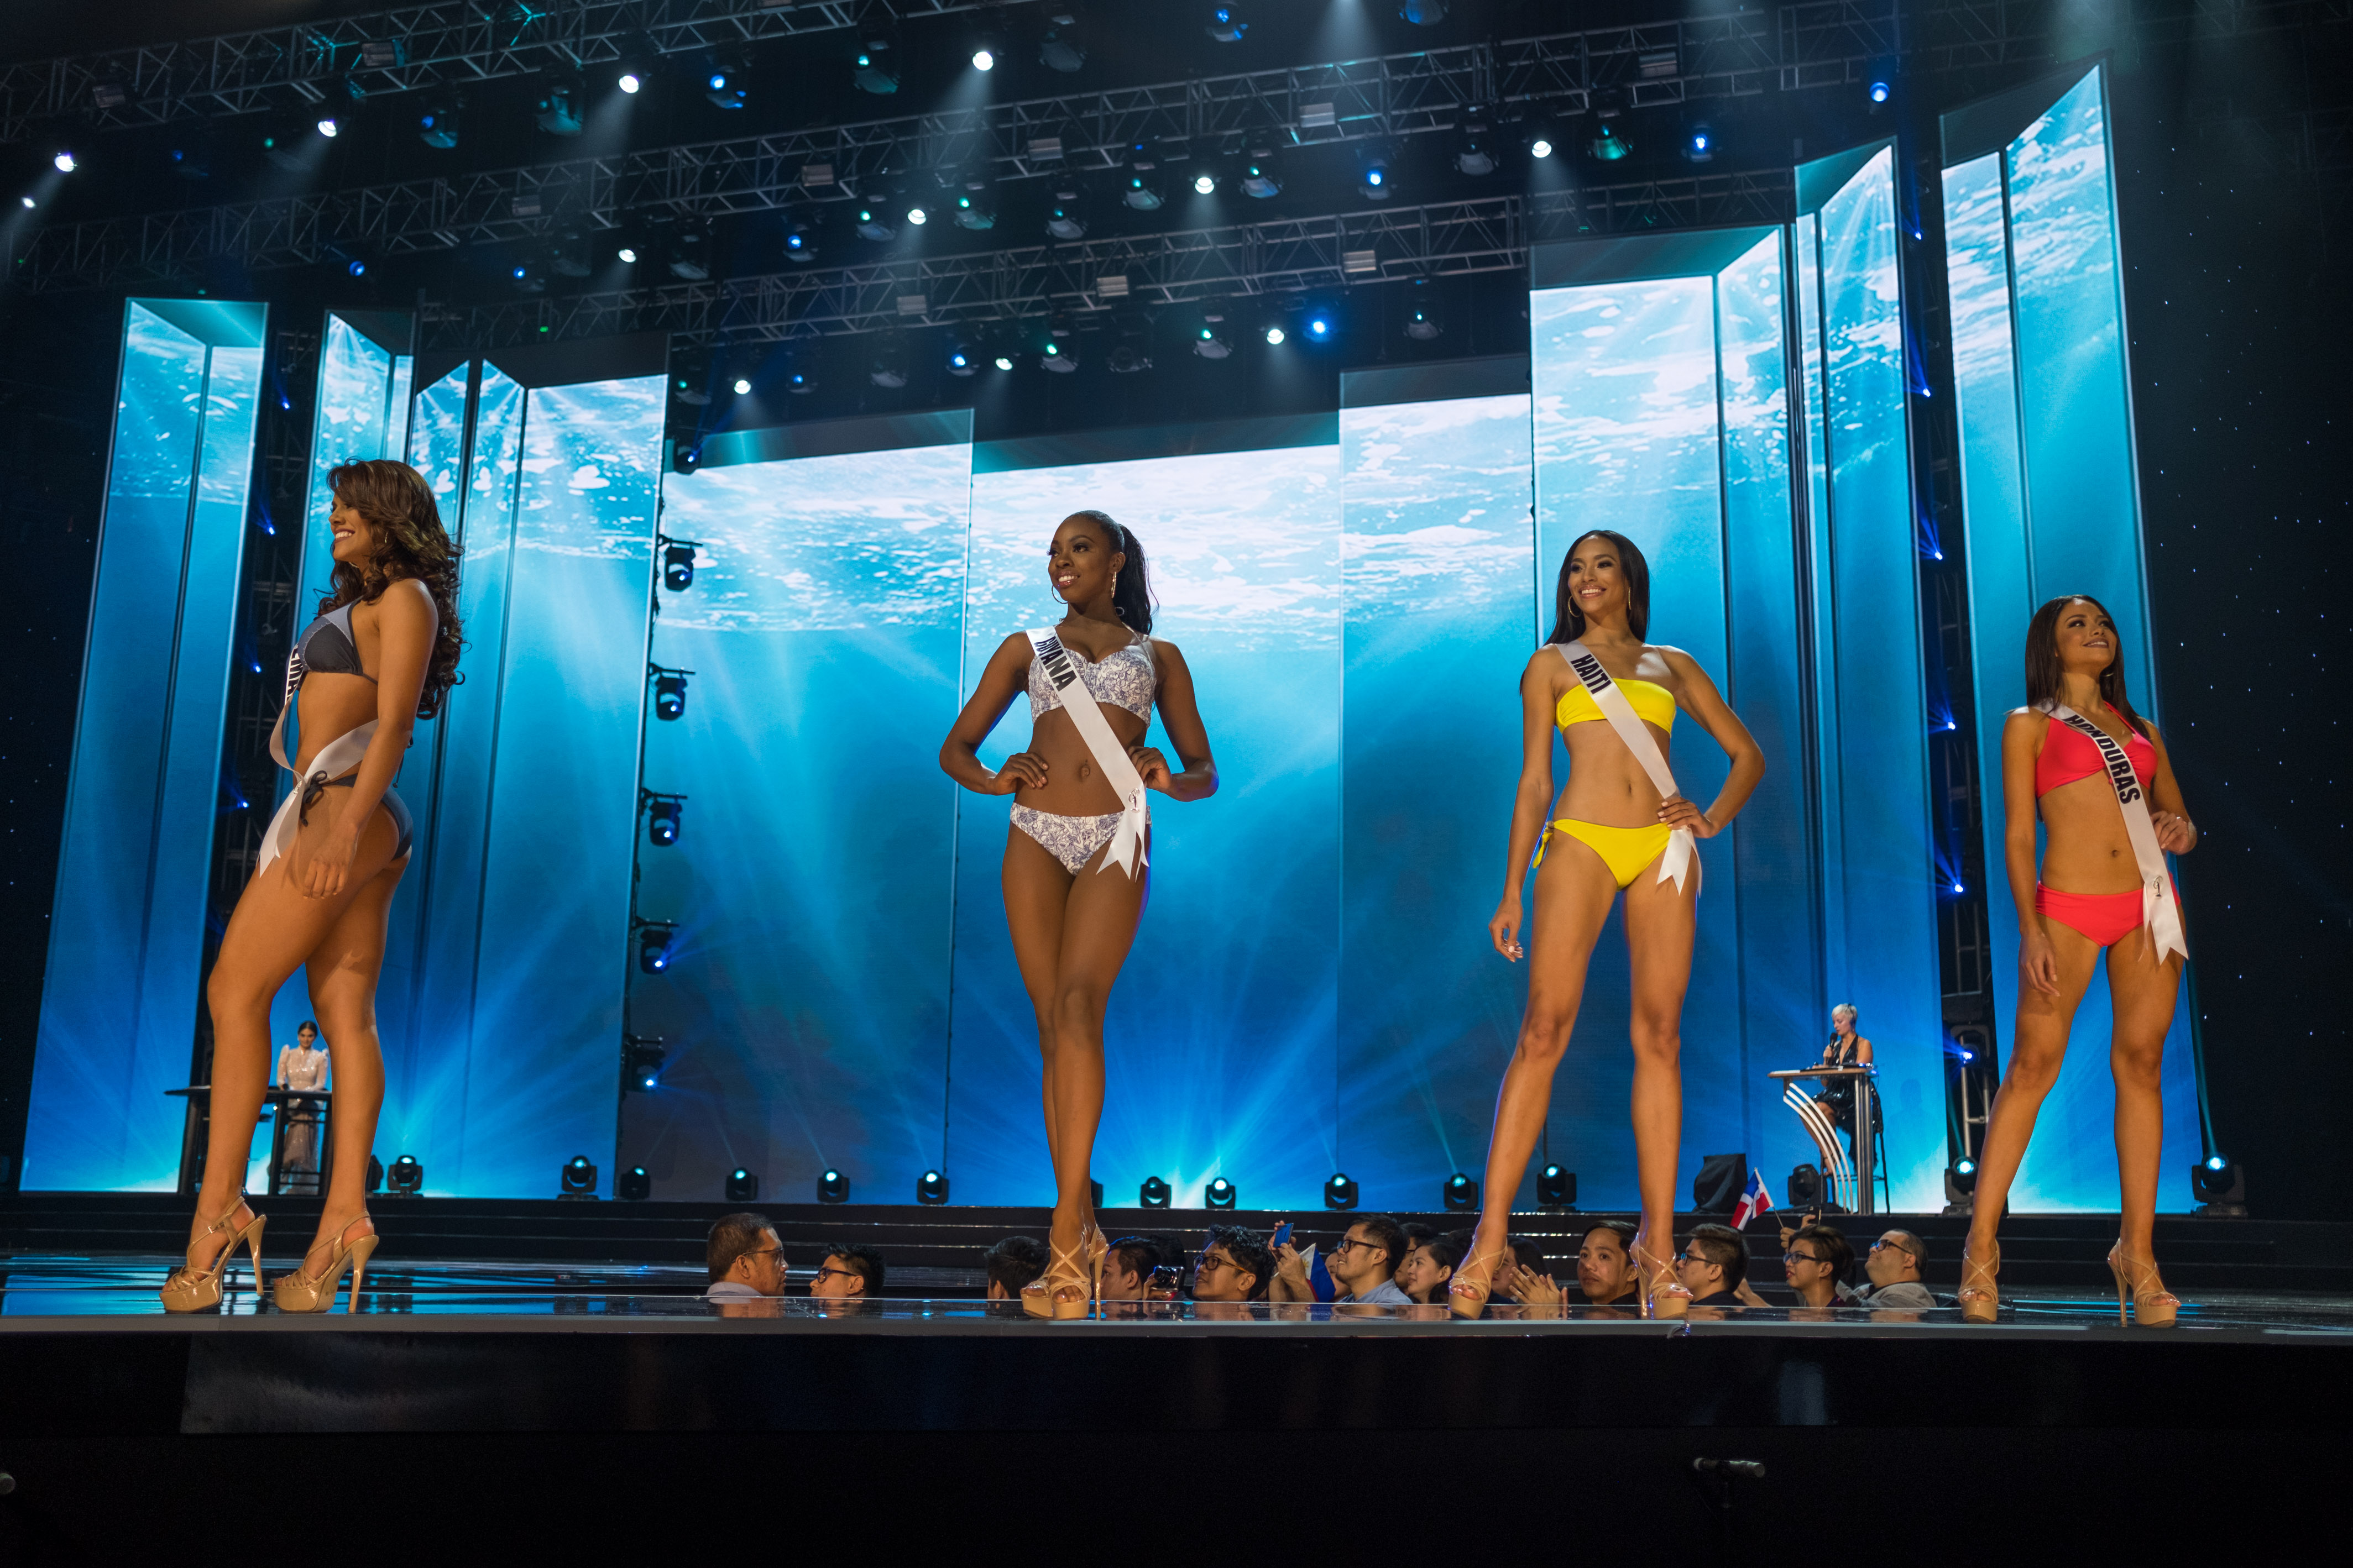 Miss Universe 2017 Crown >> Miss Universe 2017 Live Stream Online Video: Watch Preliminary Competition As Beauty Queens Get ...